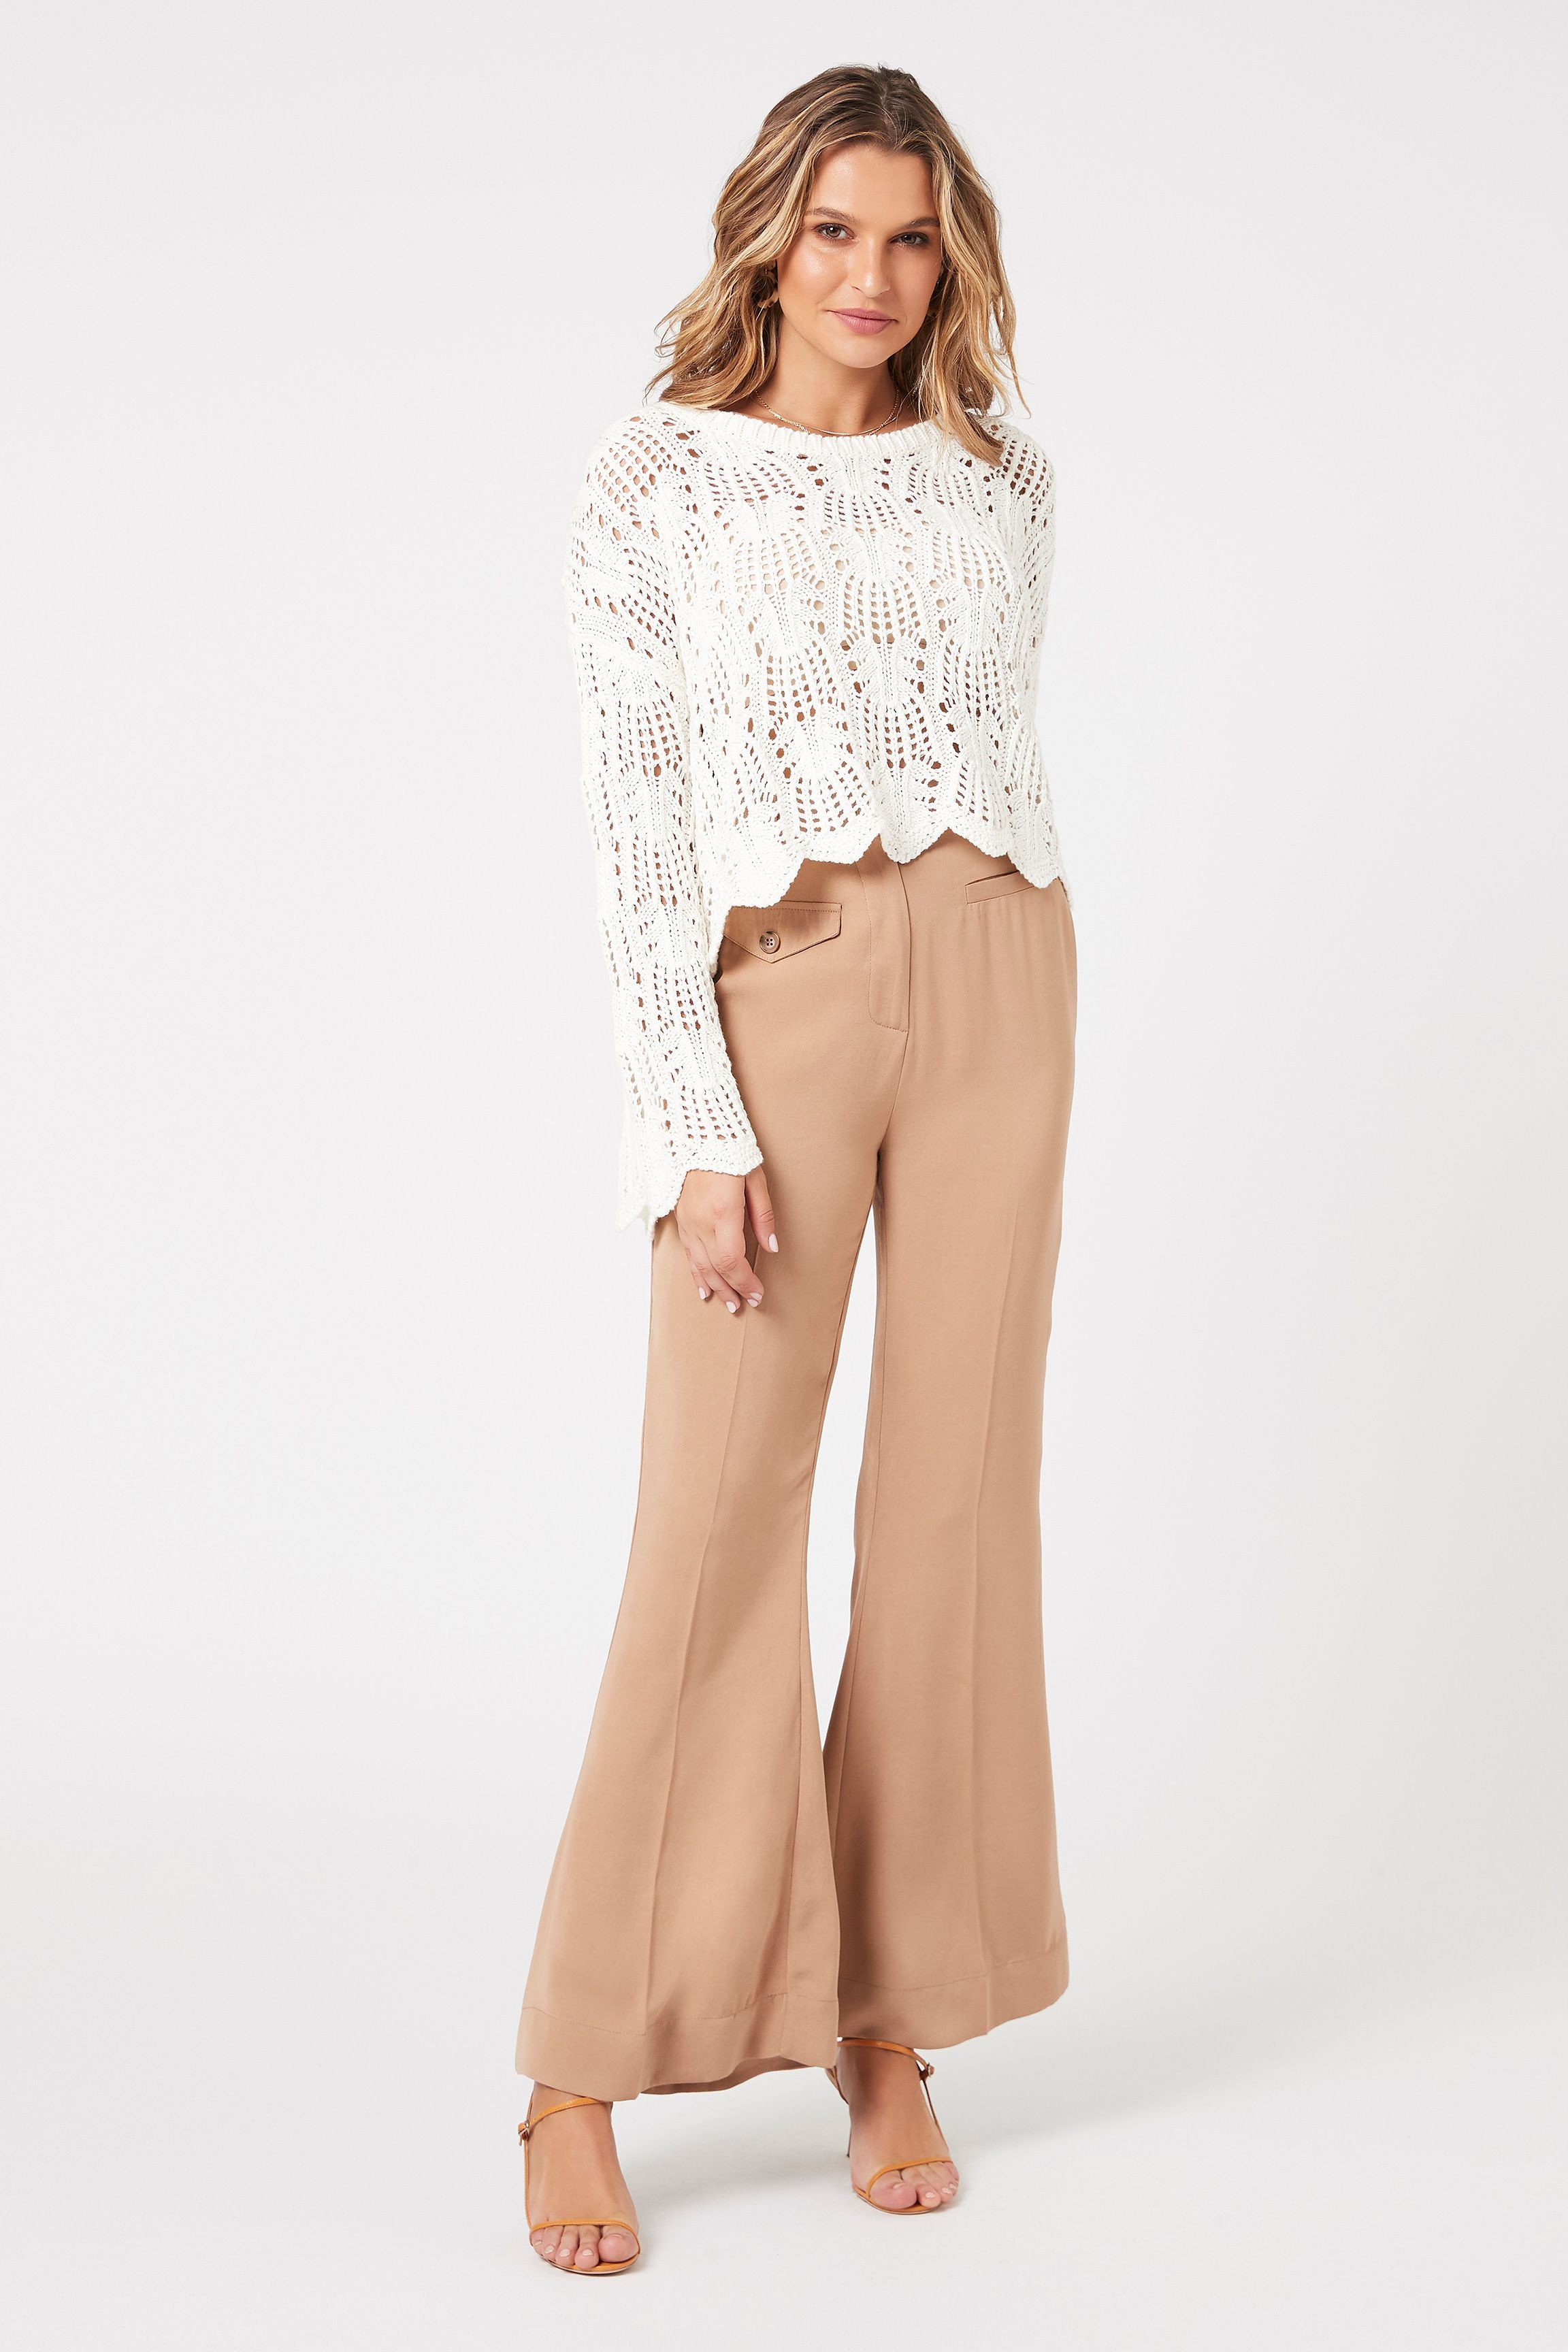 Wynn Scallop Knit Sweater